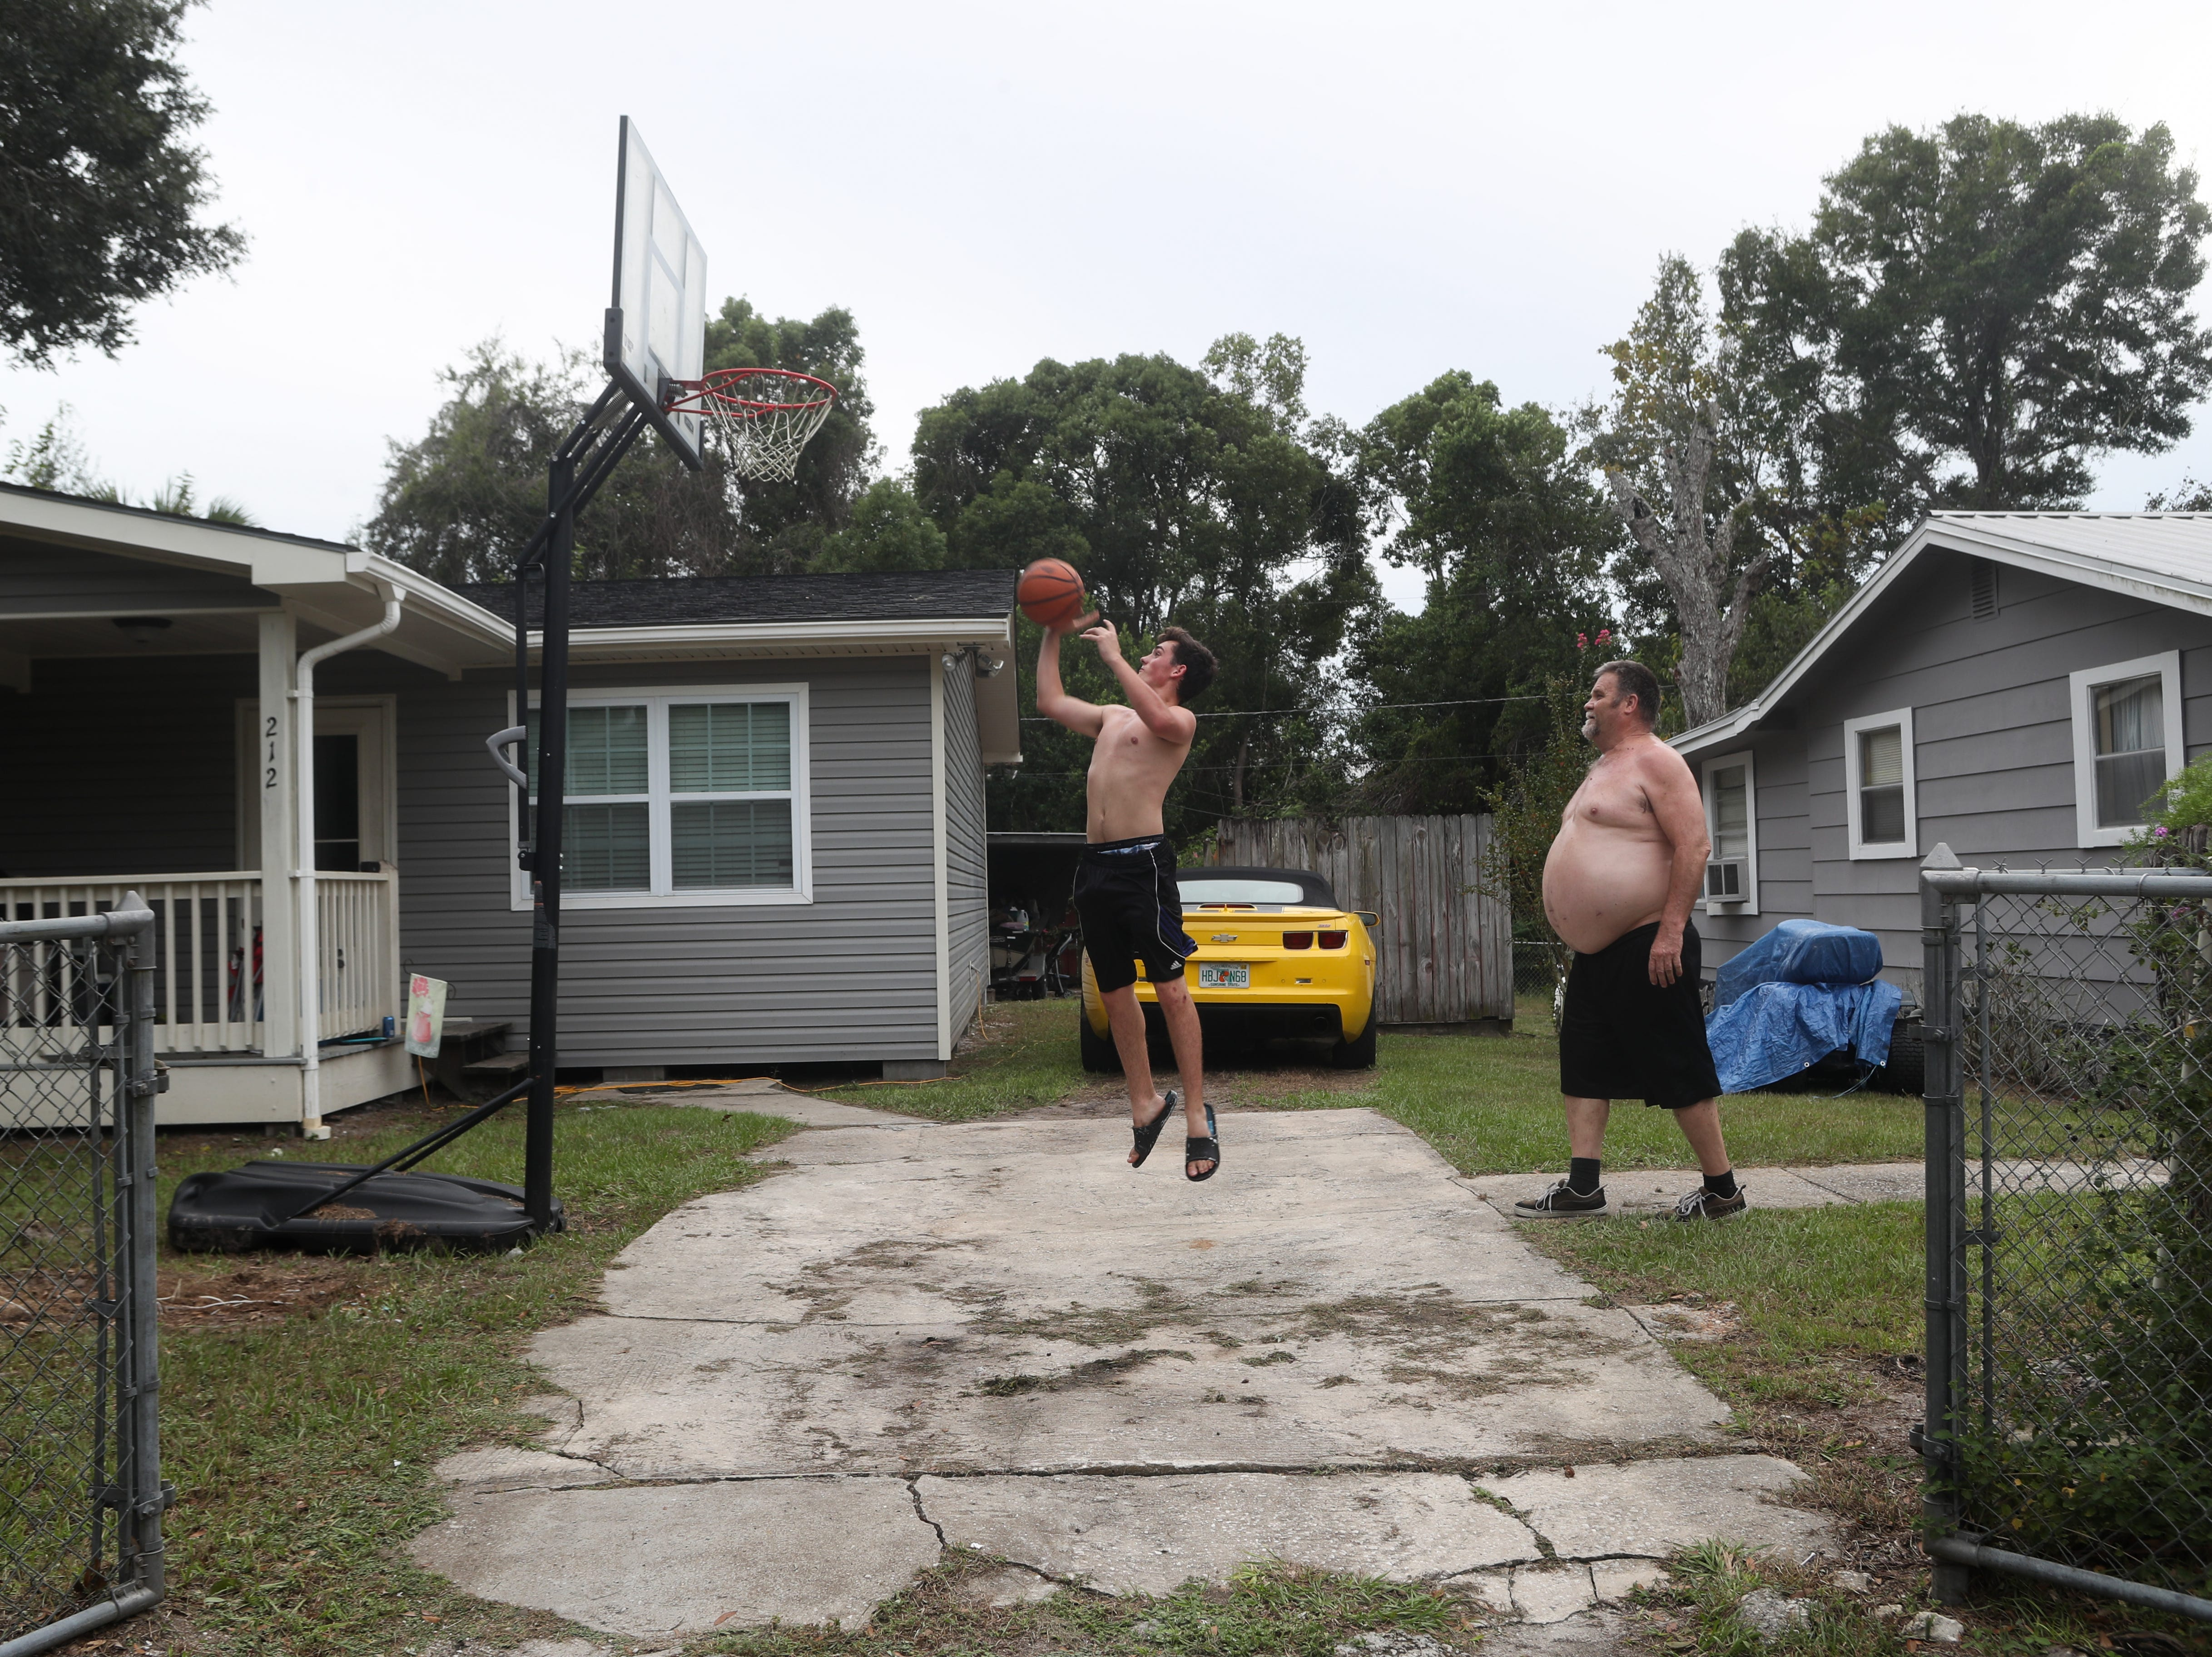 """""""I've been here 61 years and I ain't never left,"""" said John Silva as he plays basketball with his son Seth Silva, 17, in their front yard on Fourth Street in Apalachicola, Fla. Tuesday evening, Oct. 9, 2018. The family was not planning to leave their home despite a mandatory evacuation order for all of Franklin County given on Tuesday morning."""